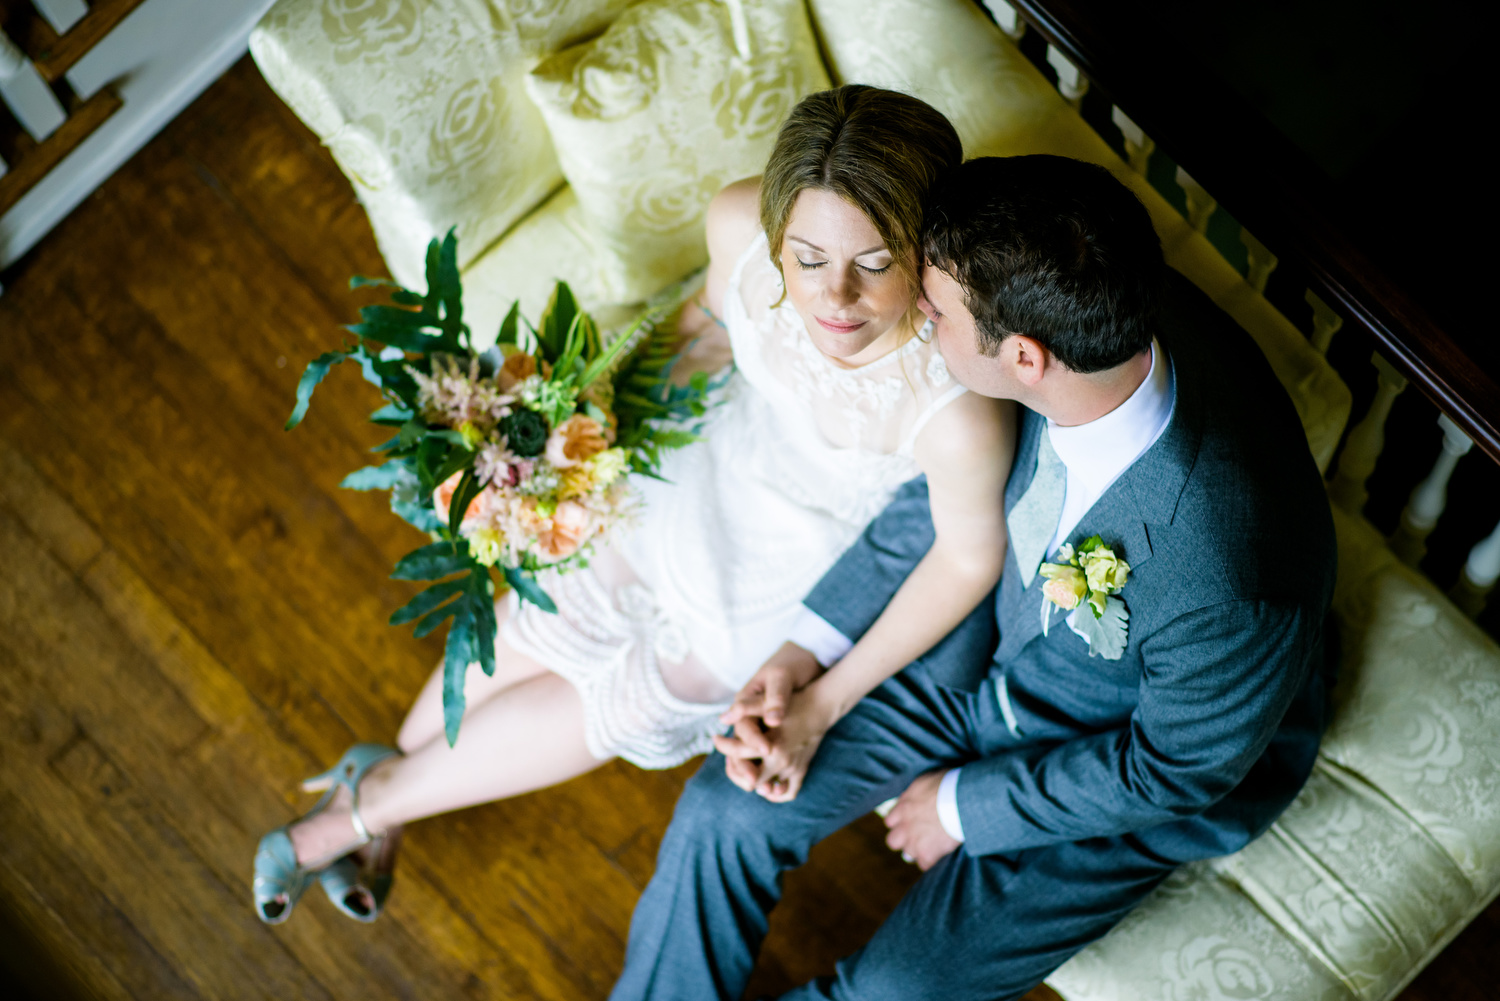 Intimate portrait of the bride and groom during a Cheney Mansion wedding in Oak Park.